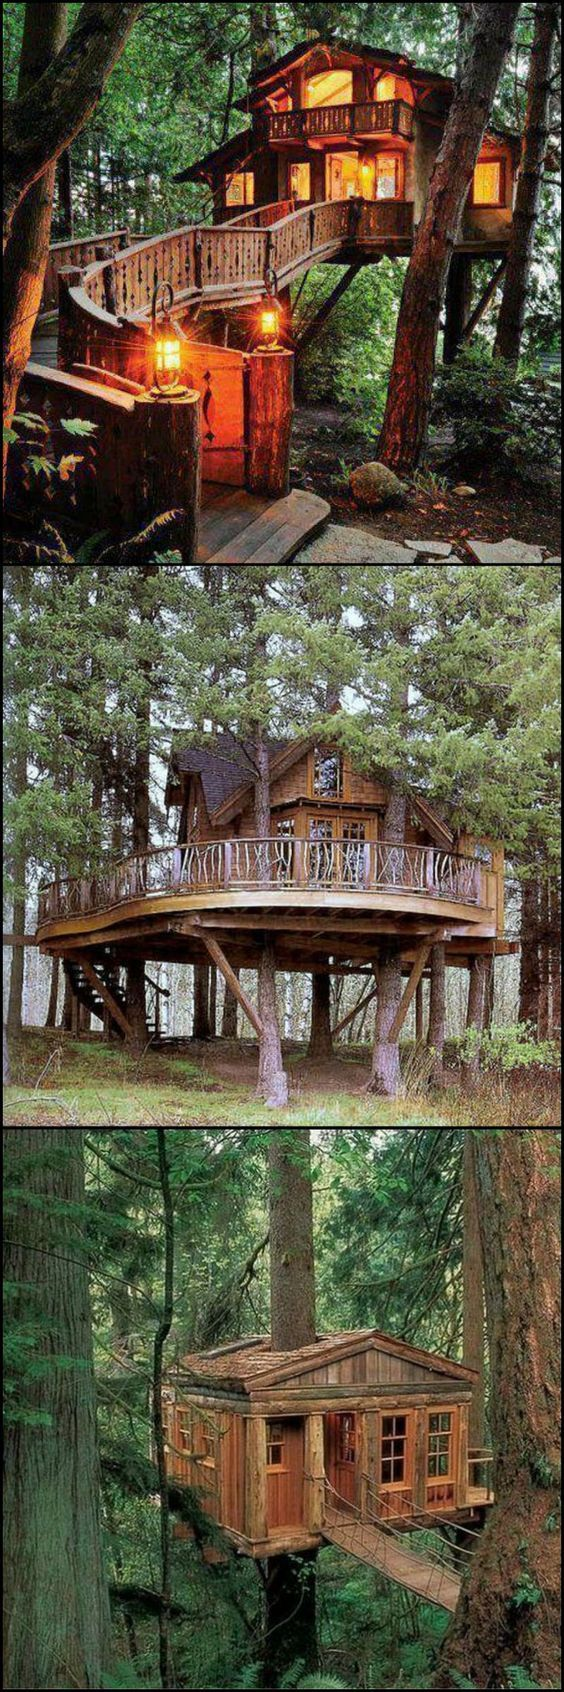 """If the idea of a tree house doesn't stir your imagination, you might want to check that your heart is still beating :)  The great news is that there are lots of inspired adults around the world determined to fulfil their childhood desires!  For more examples head over to our """"Treehouses for the Child Within"""" album on our site at http://theownerbuildernetwork.co/vo53  Whoever said treehouses are just for the kids?"""